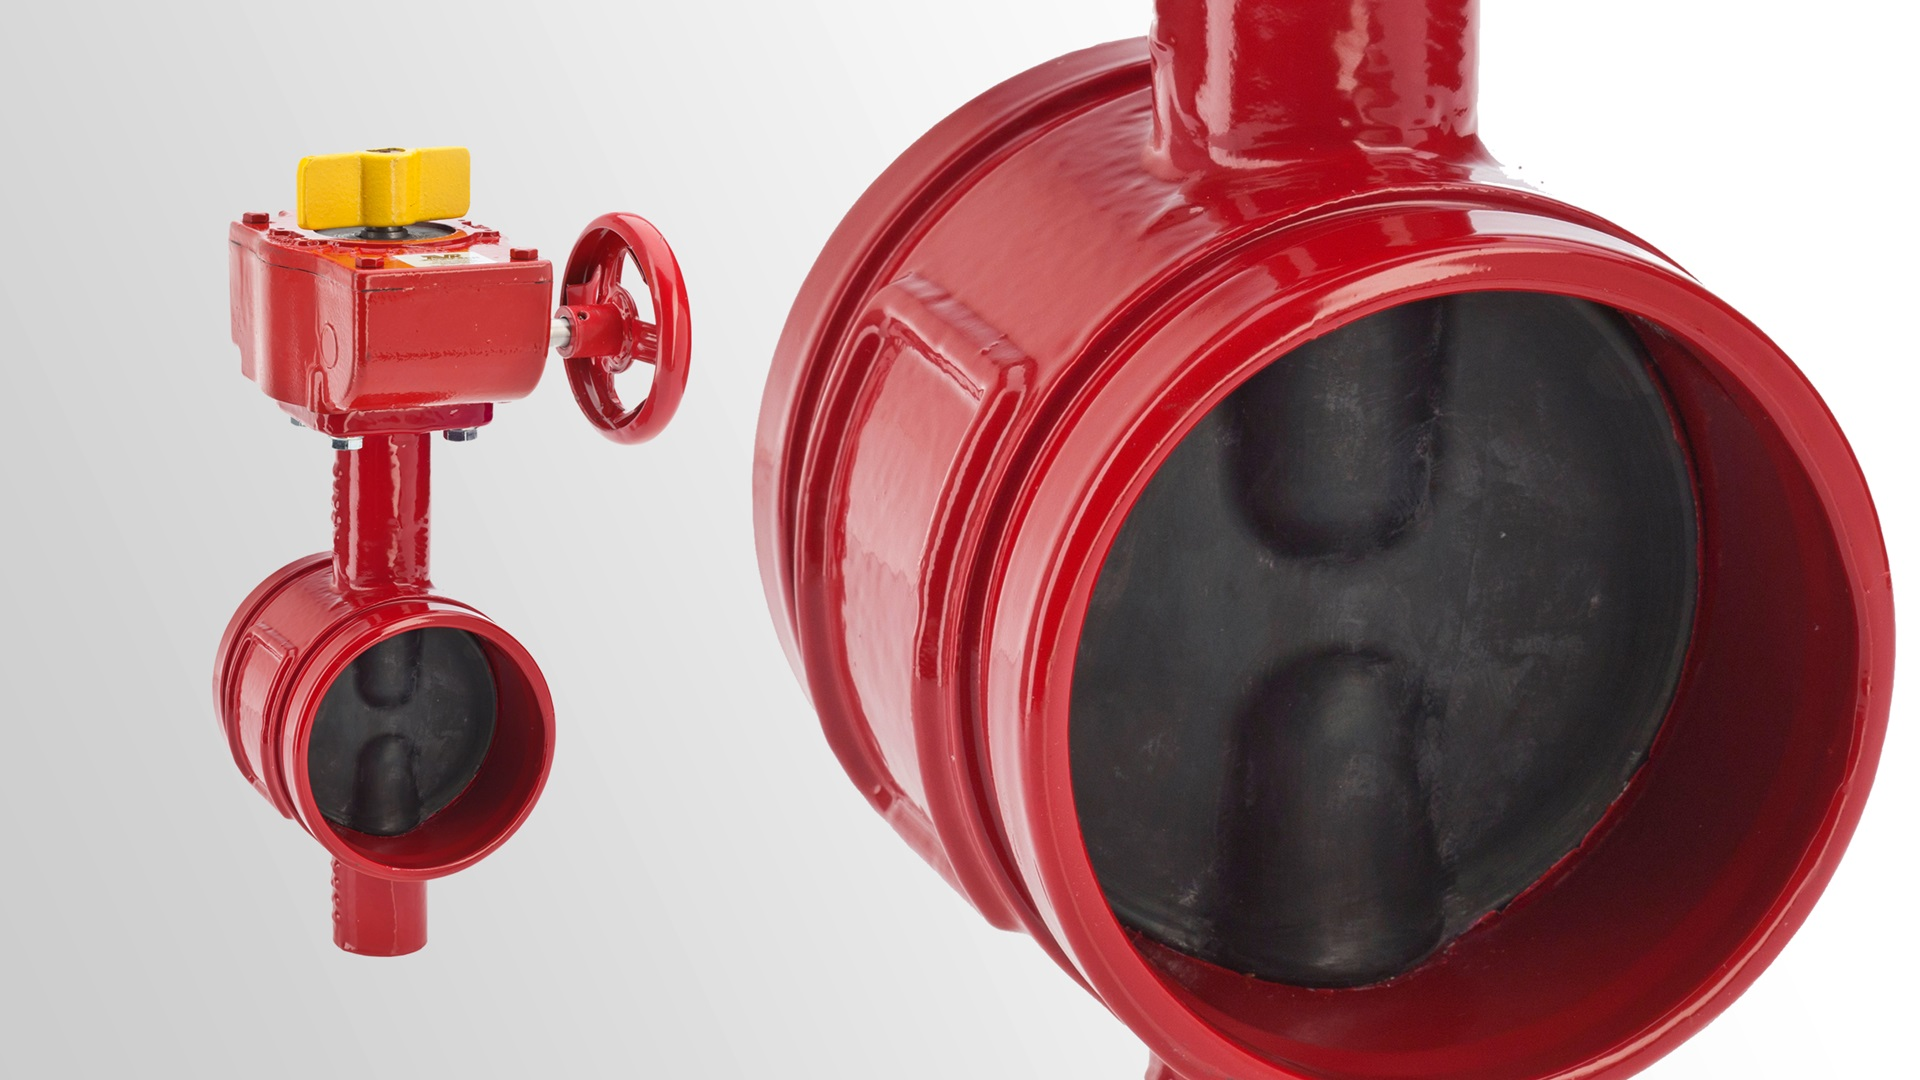 AVK butterfly valves with grooved ends for fire protection applications